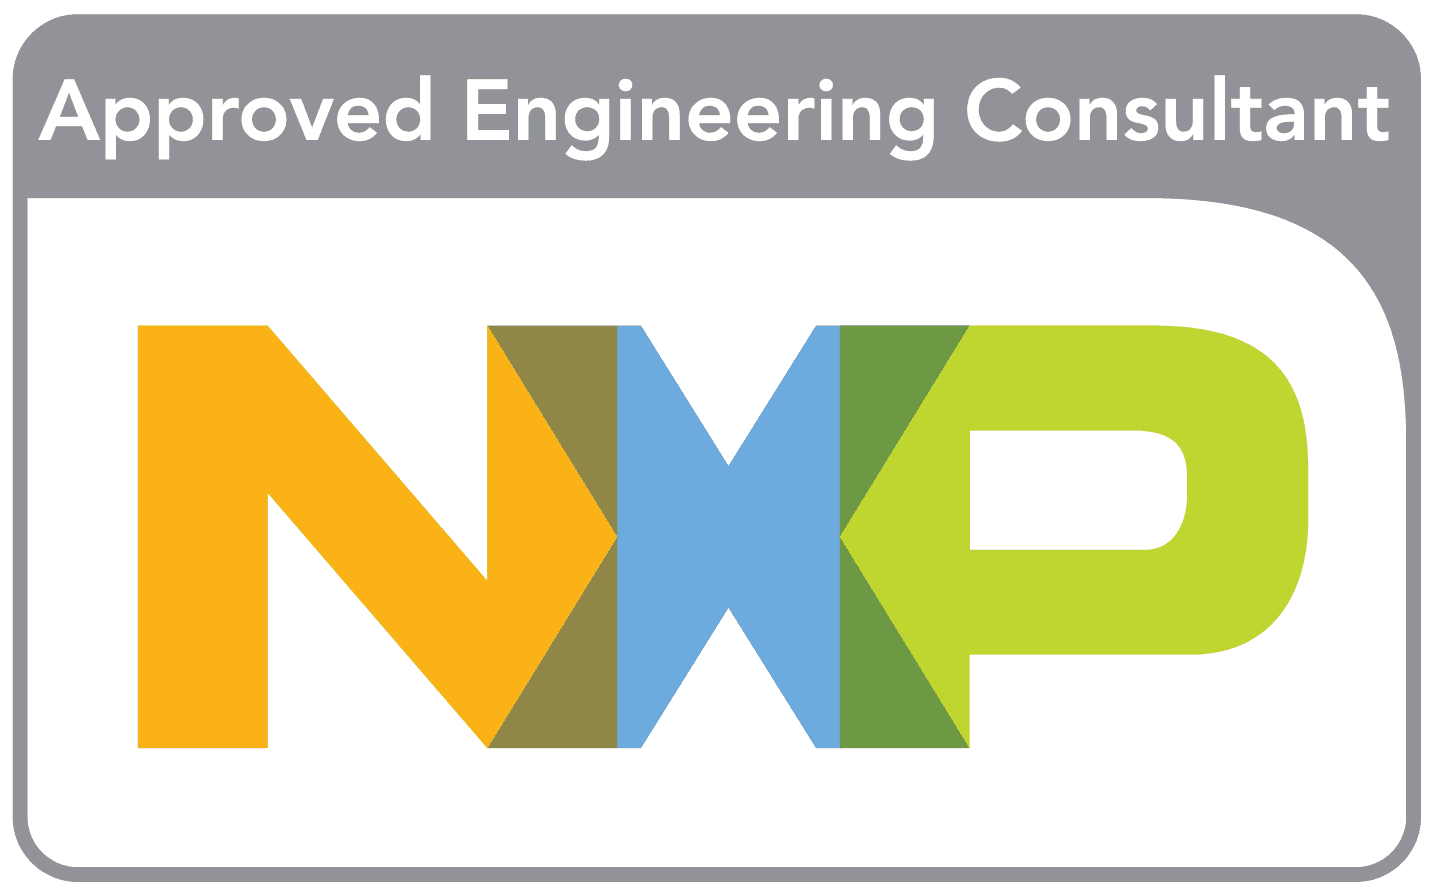 NXP Approved Engineering Consultant